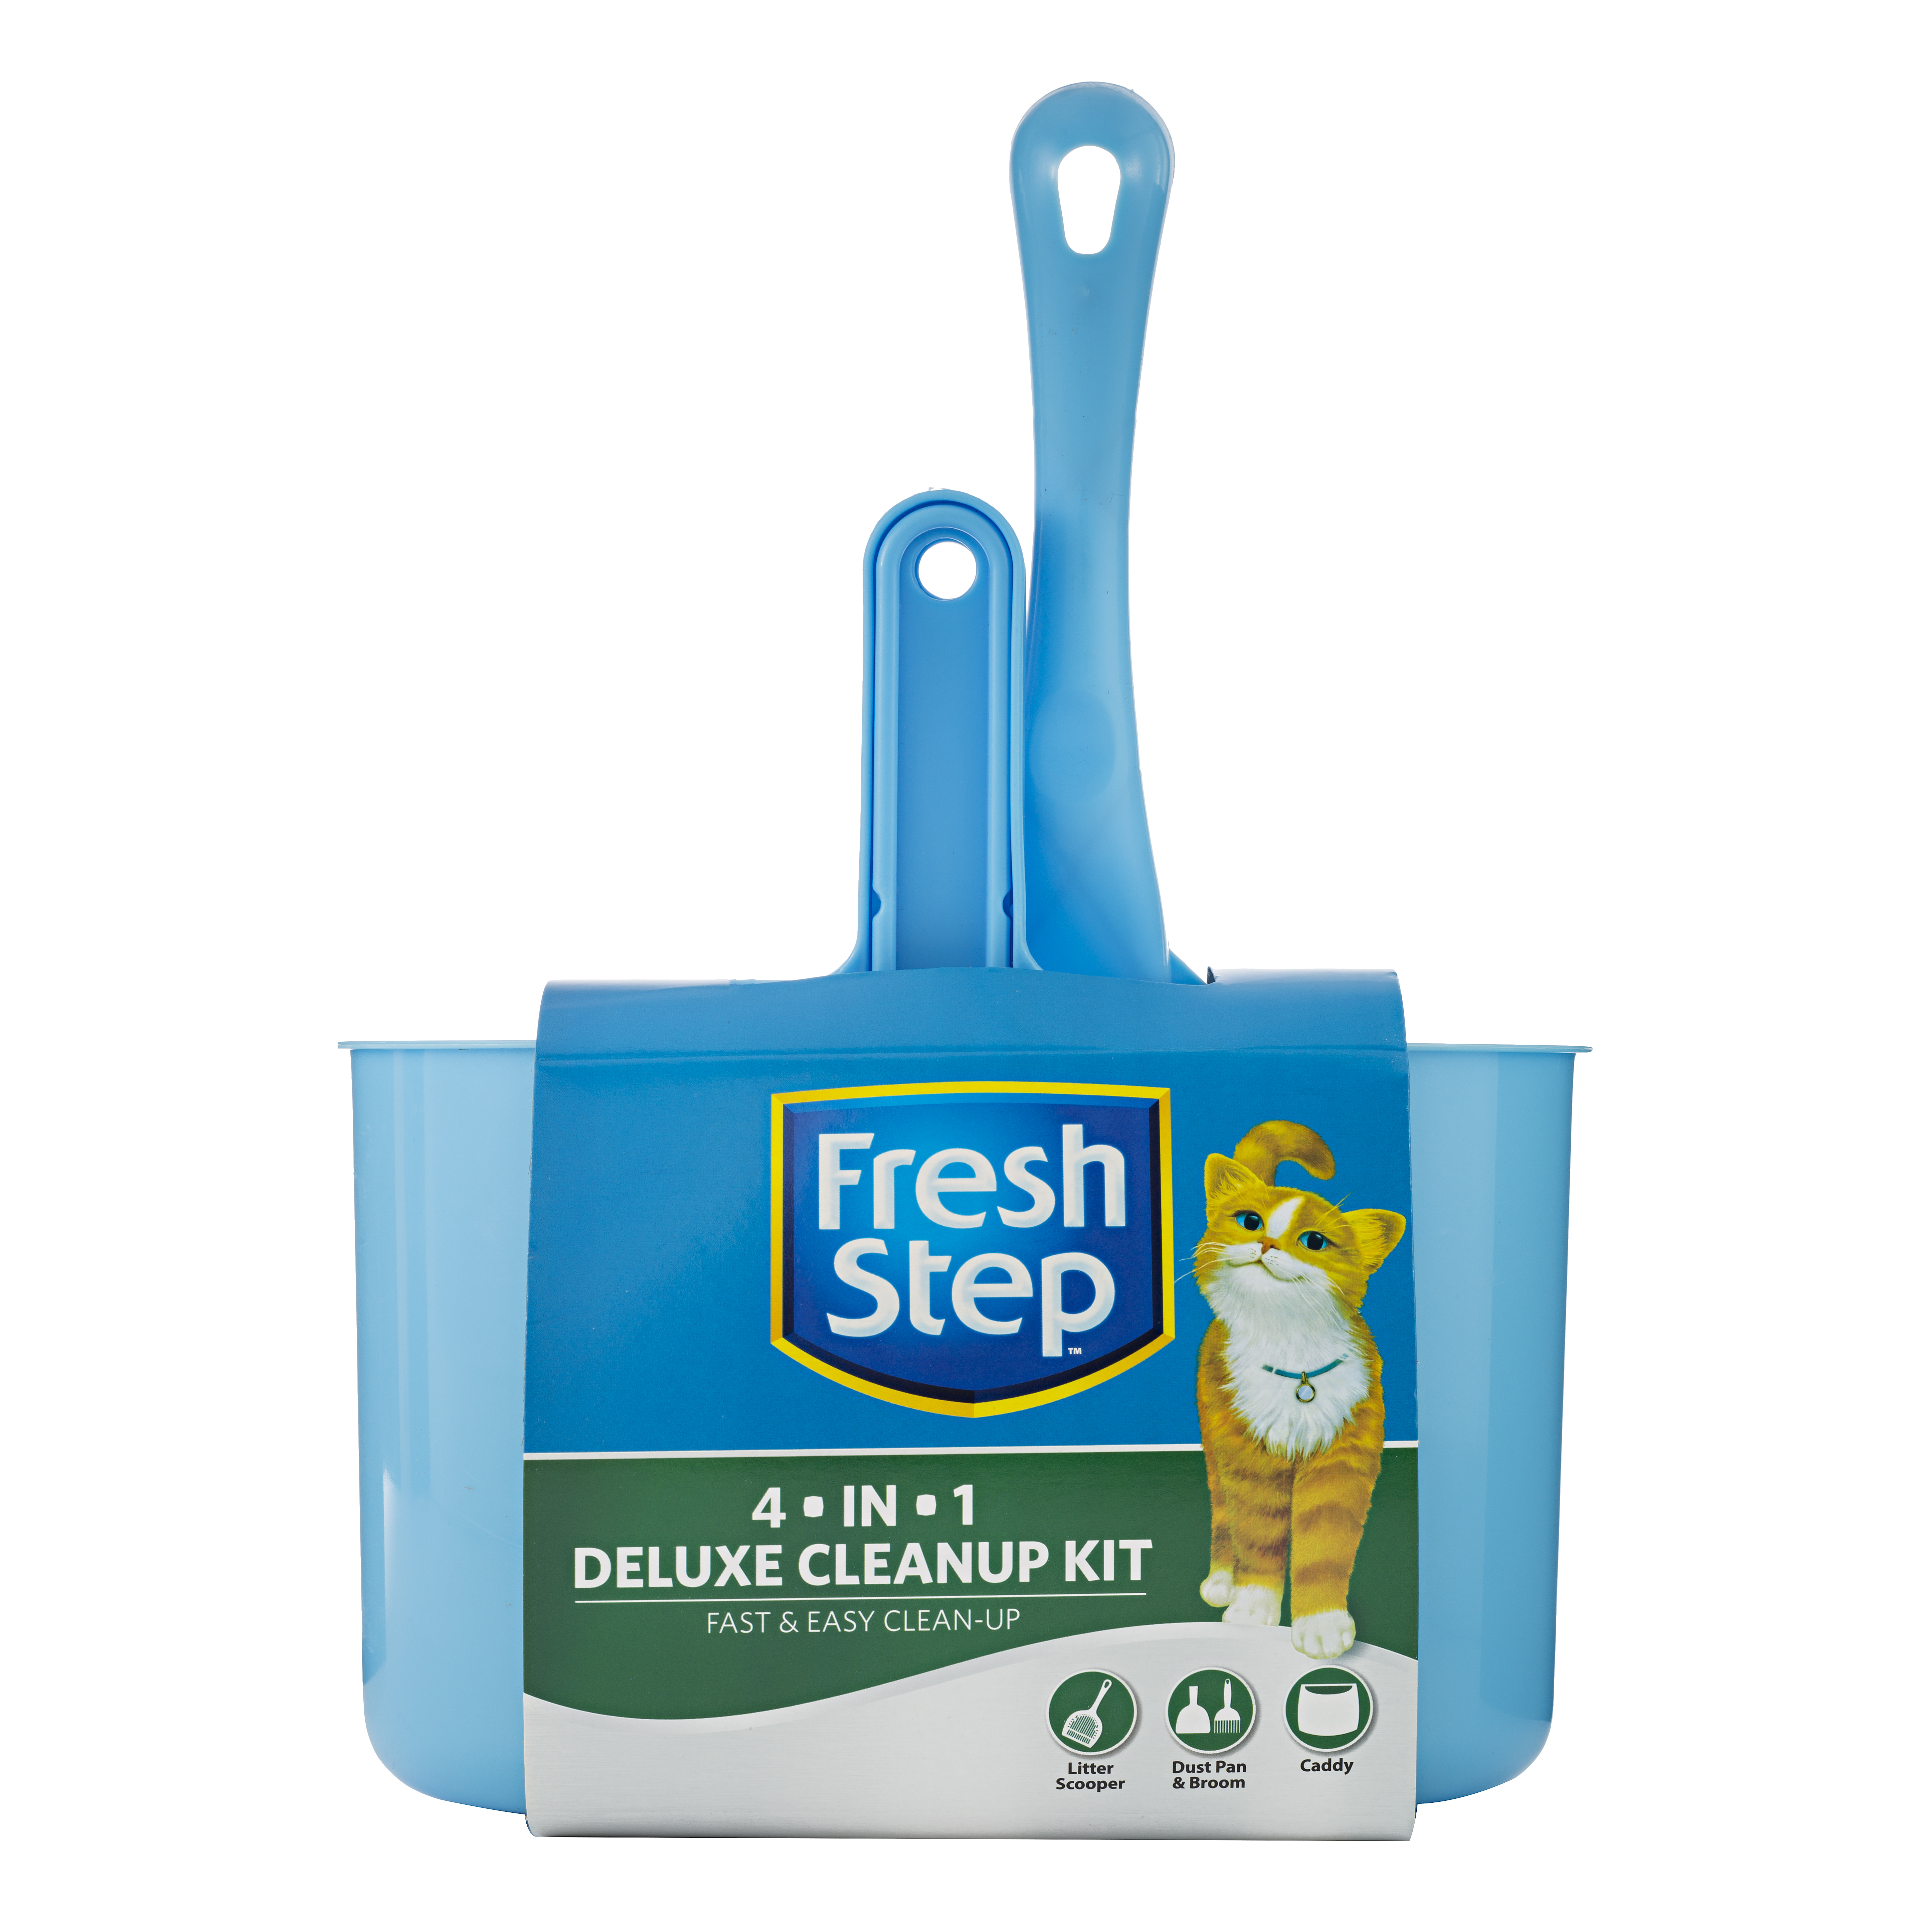 Fresh Step 4 in 1 Deluxe Cleanup Kit